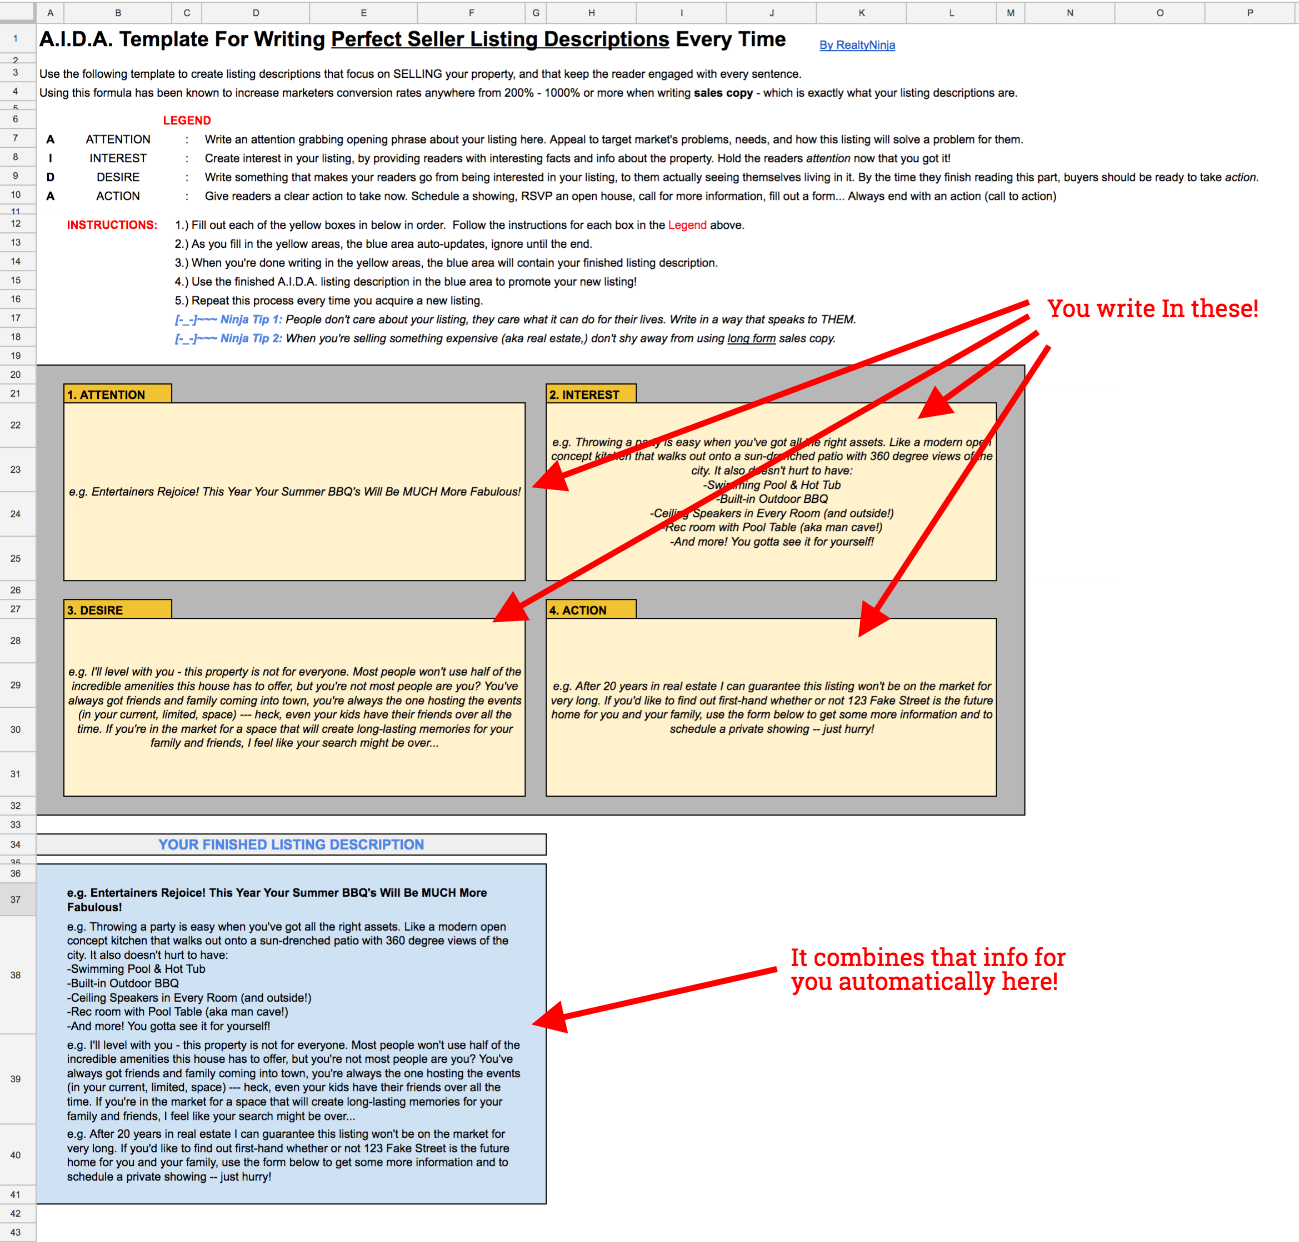 Download This AIDA Template for Writing Compelling Listing Descriptions Below